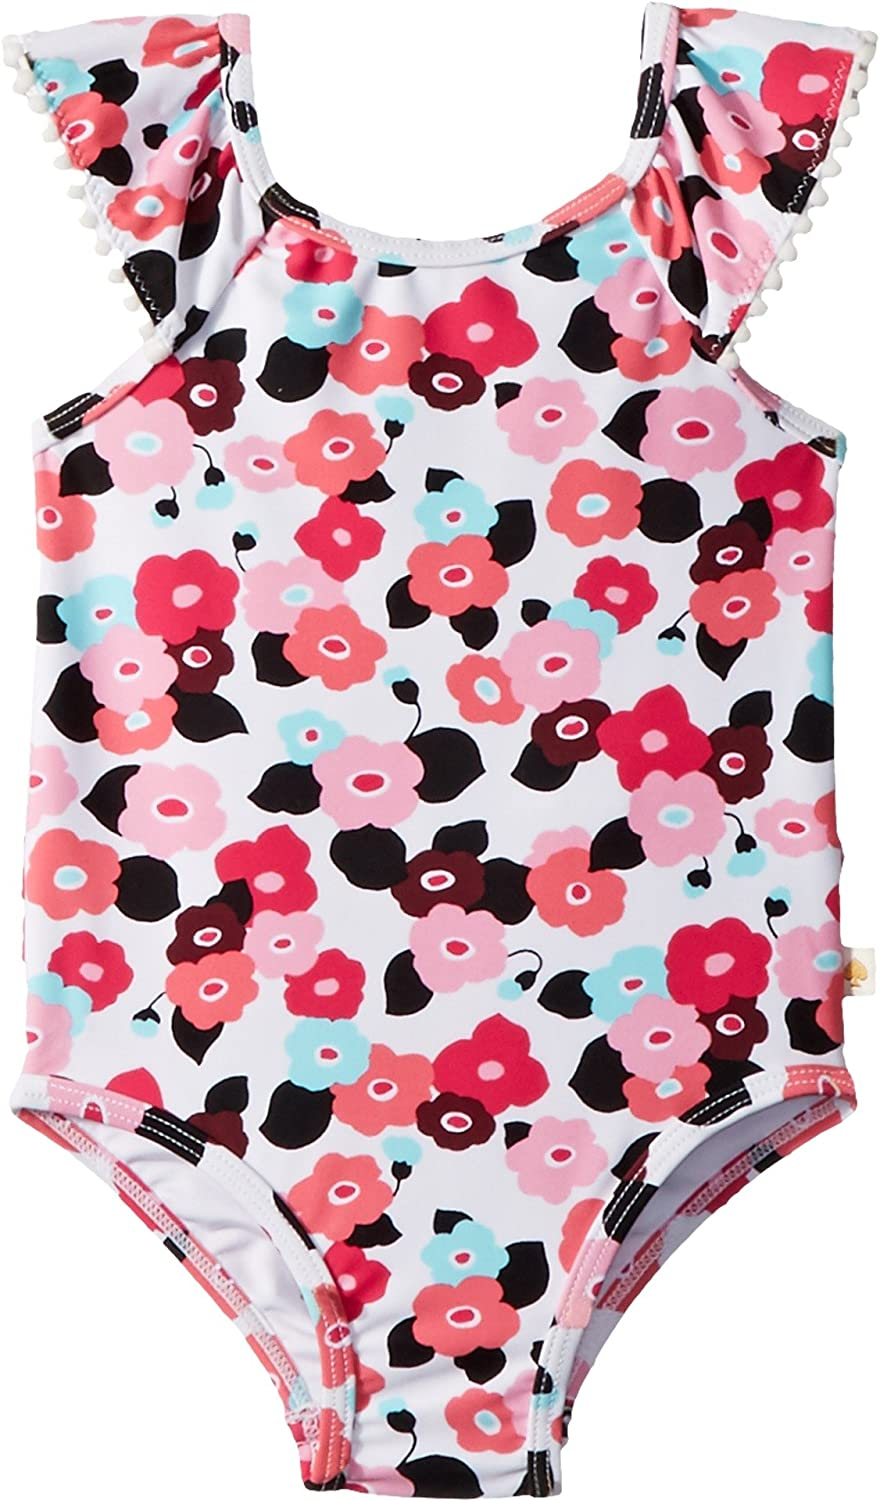 3c8b5f82a5 Keep her ready for the water in the adorable Kate Spade New York Kids®  Blooming Floral One-Piece.One-piece bathing suit.Ruffled, jewel neckline.